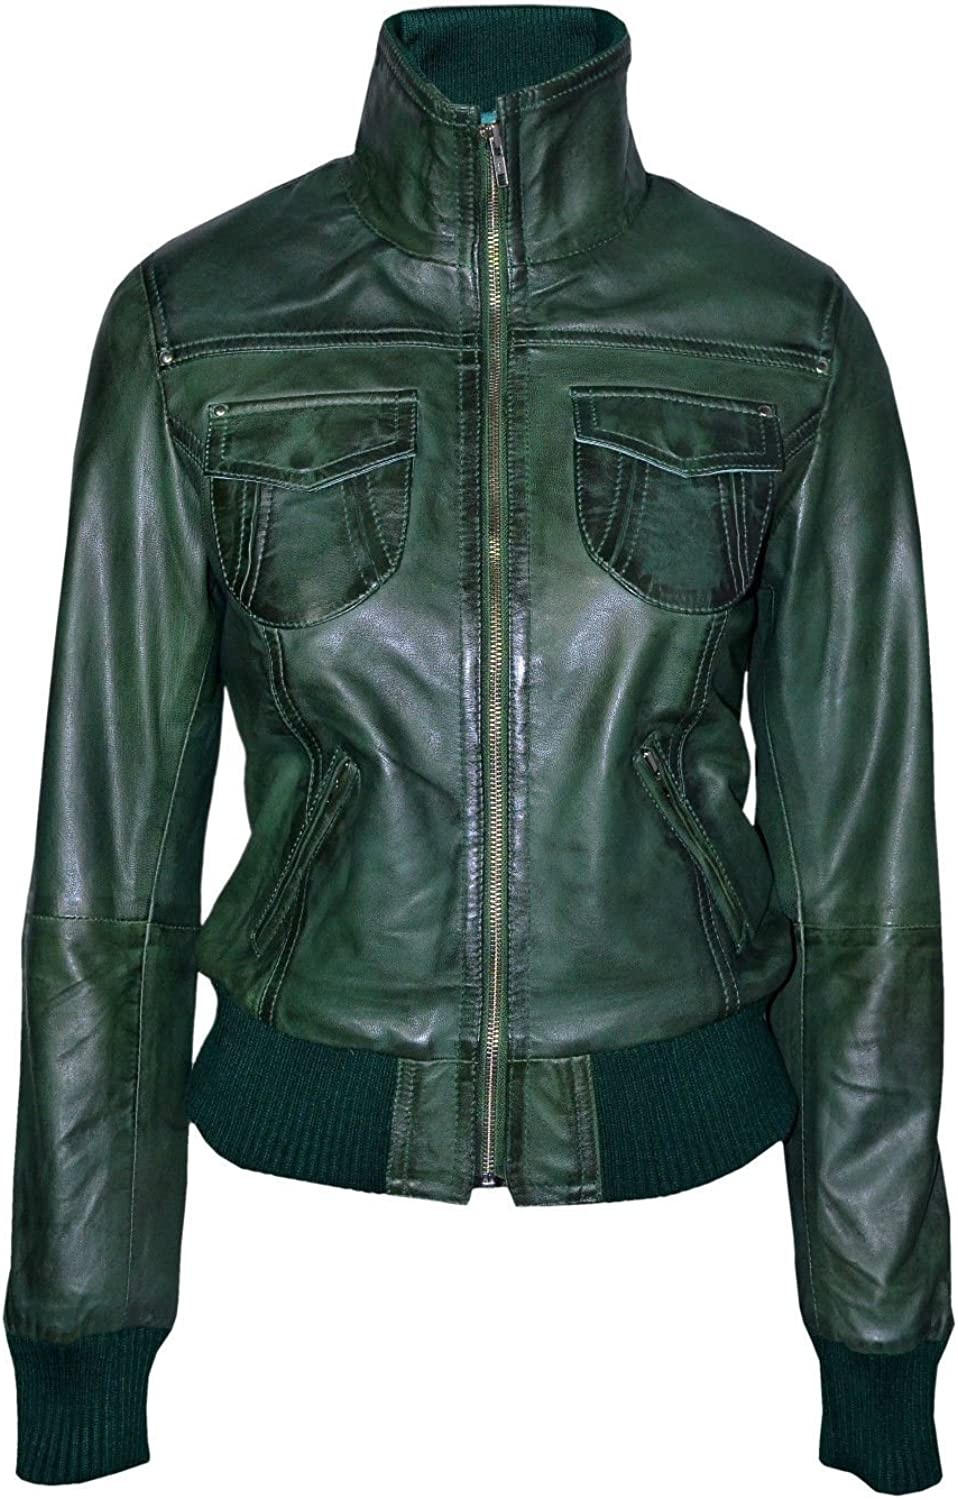 'FUSION' Ladies GREEN WASHED Short Bomber Biker Motorcycle Style Leather Jacket